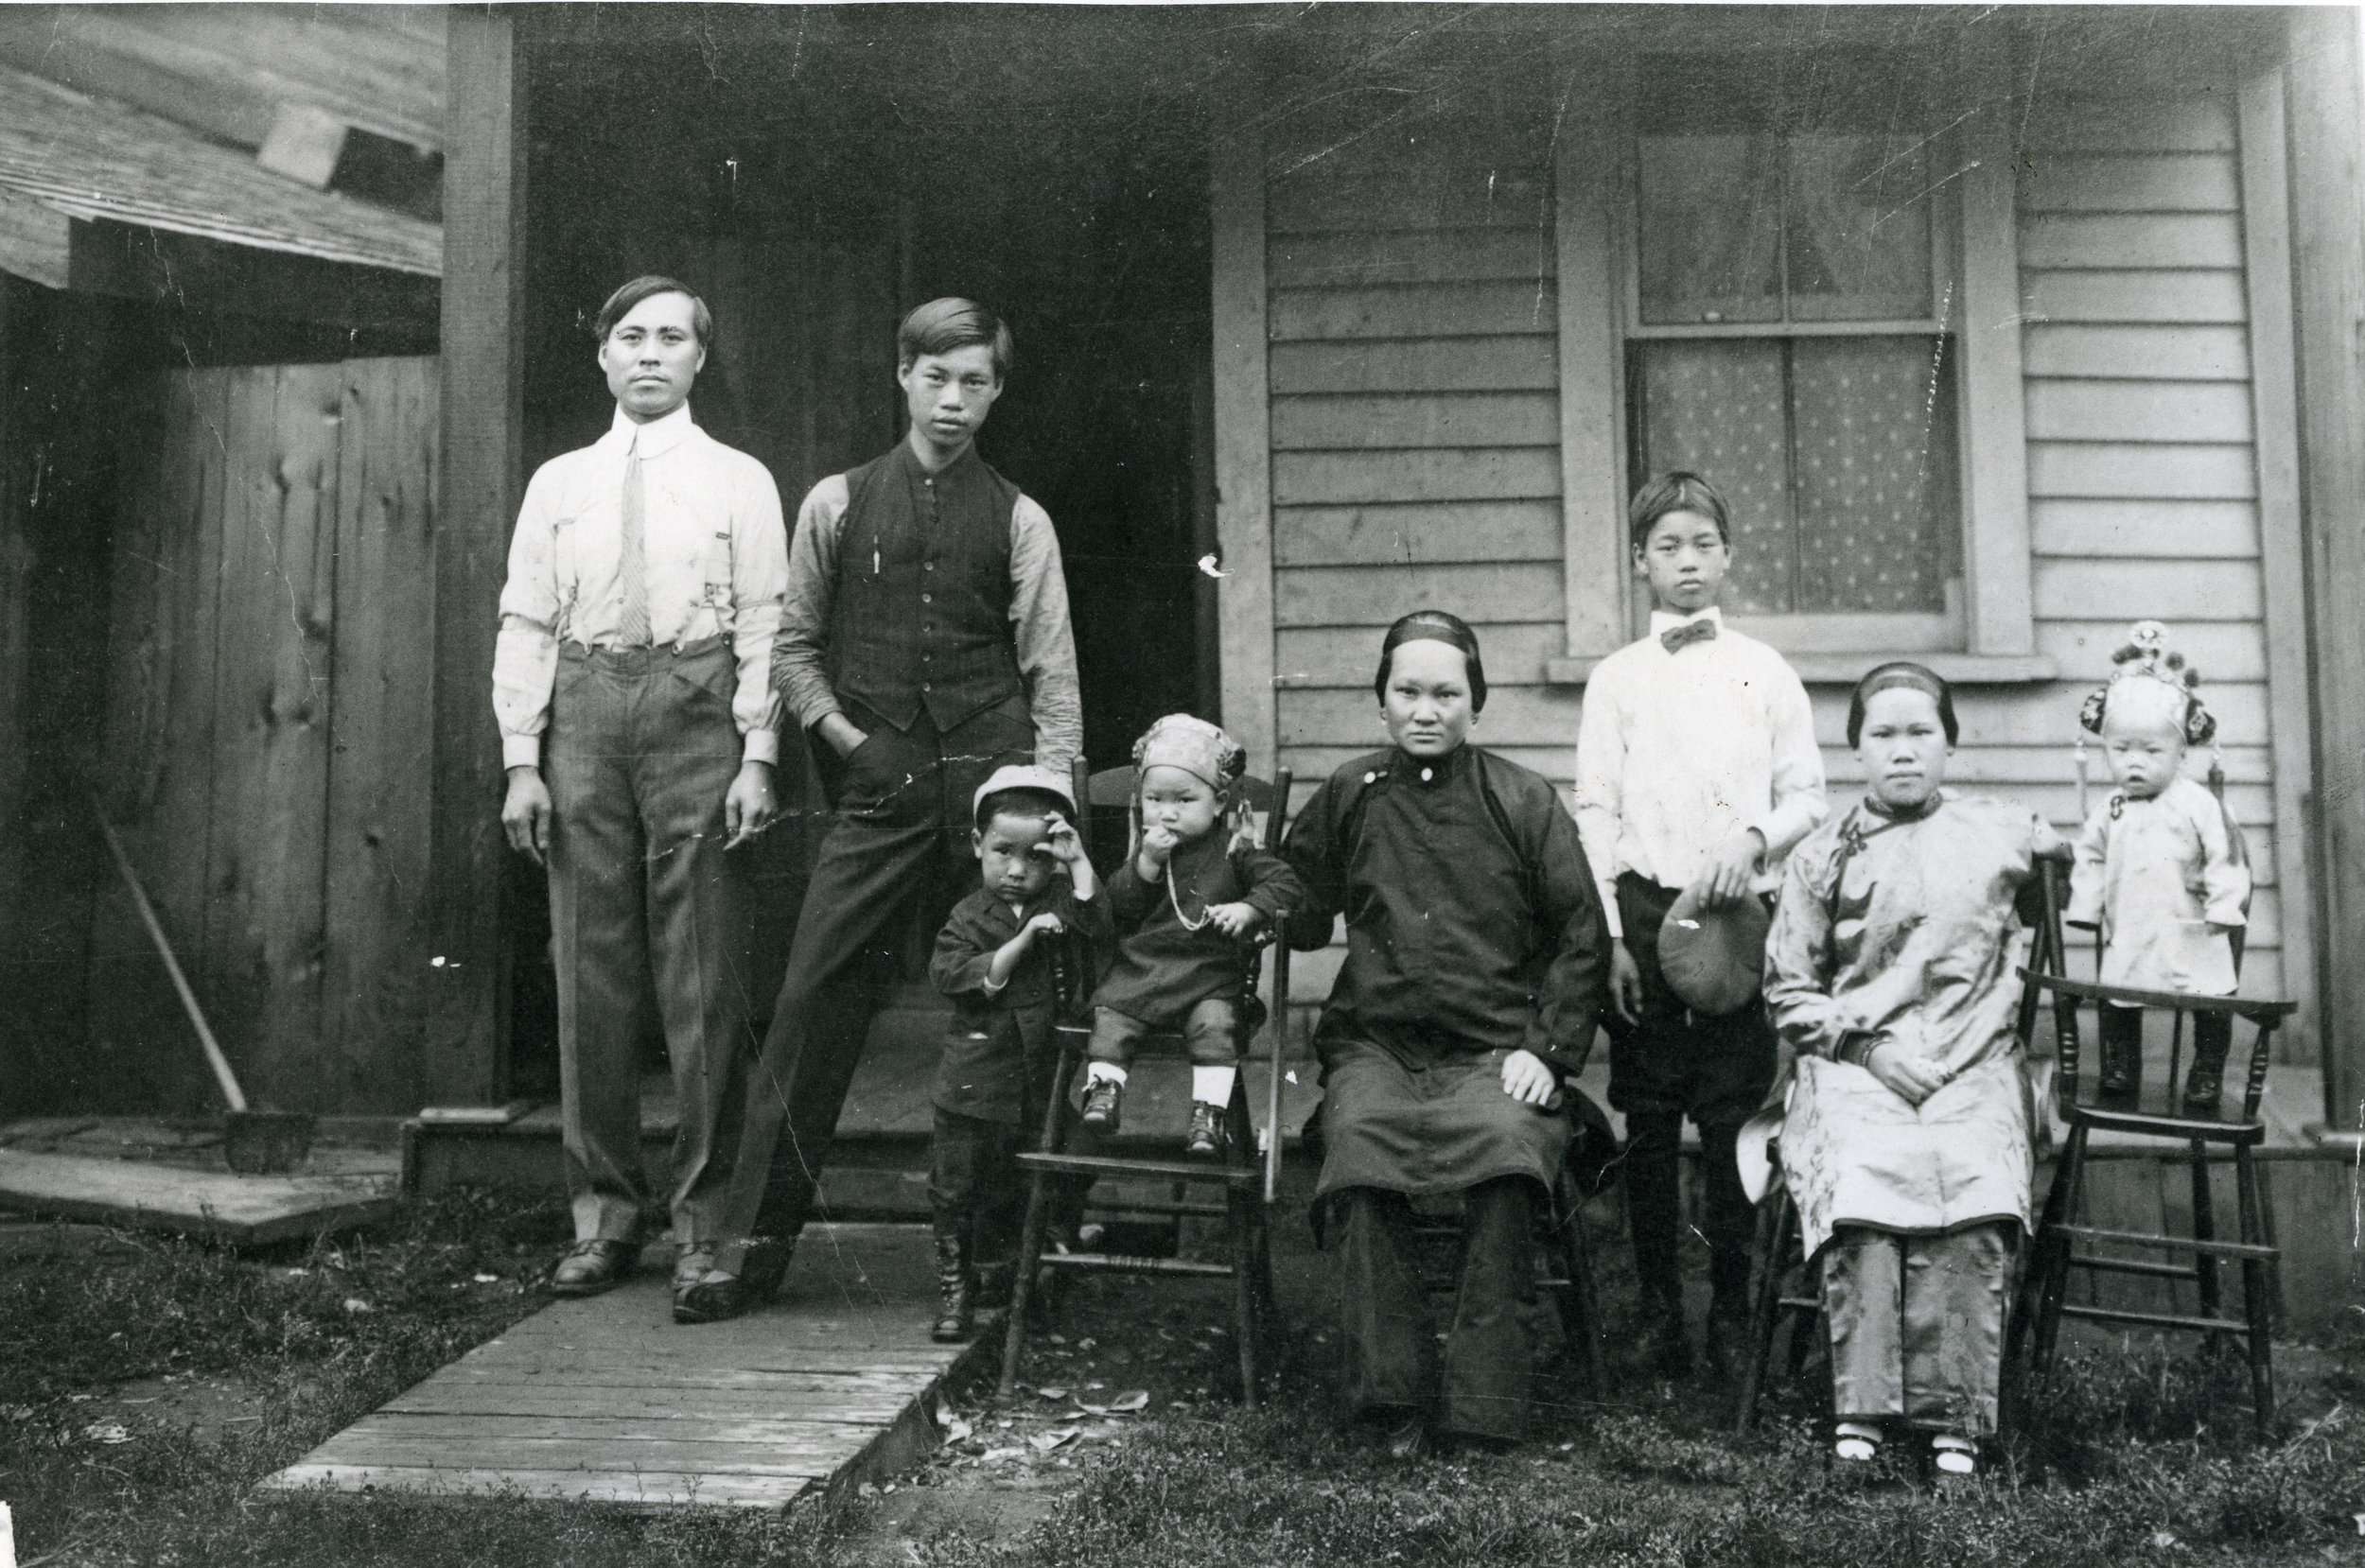 Wong Kwong at left, Yee Von Kwong seated in centre, and their children Sam and Jean to her left, circa 1914.